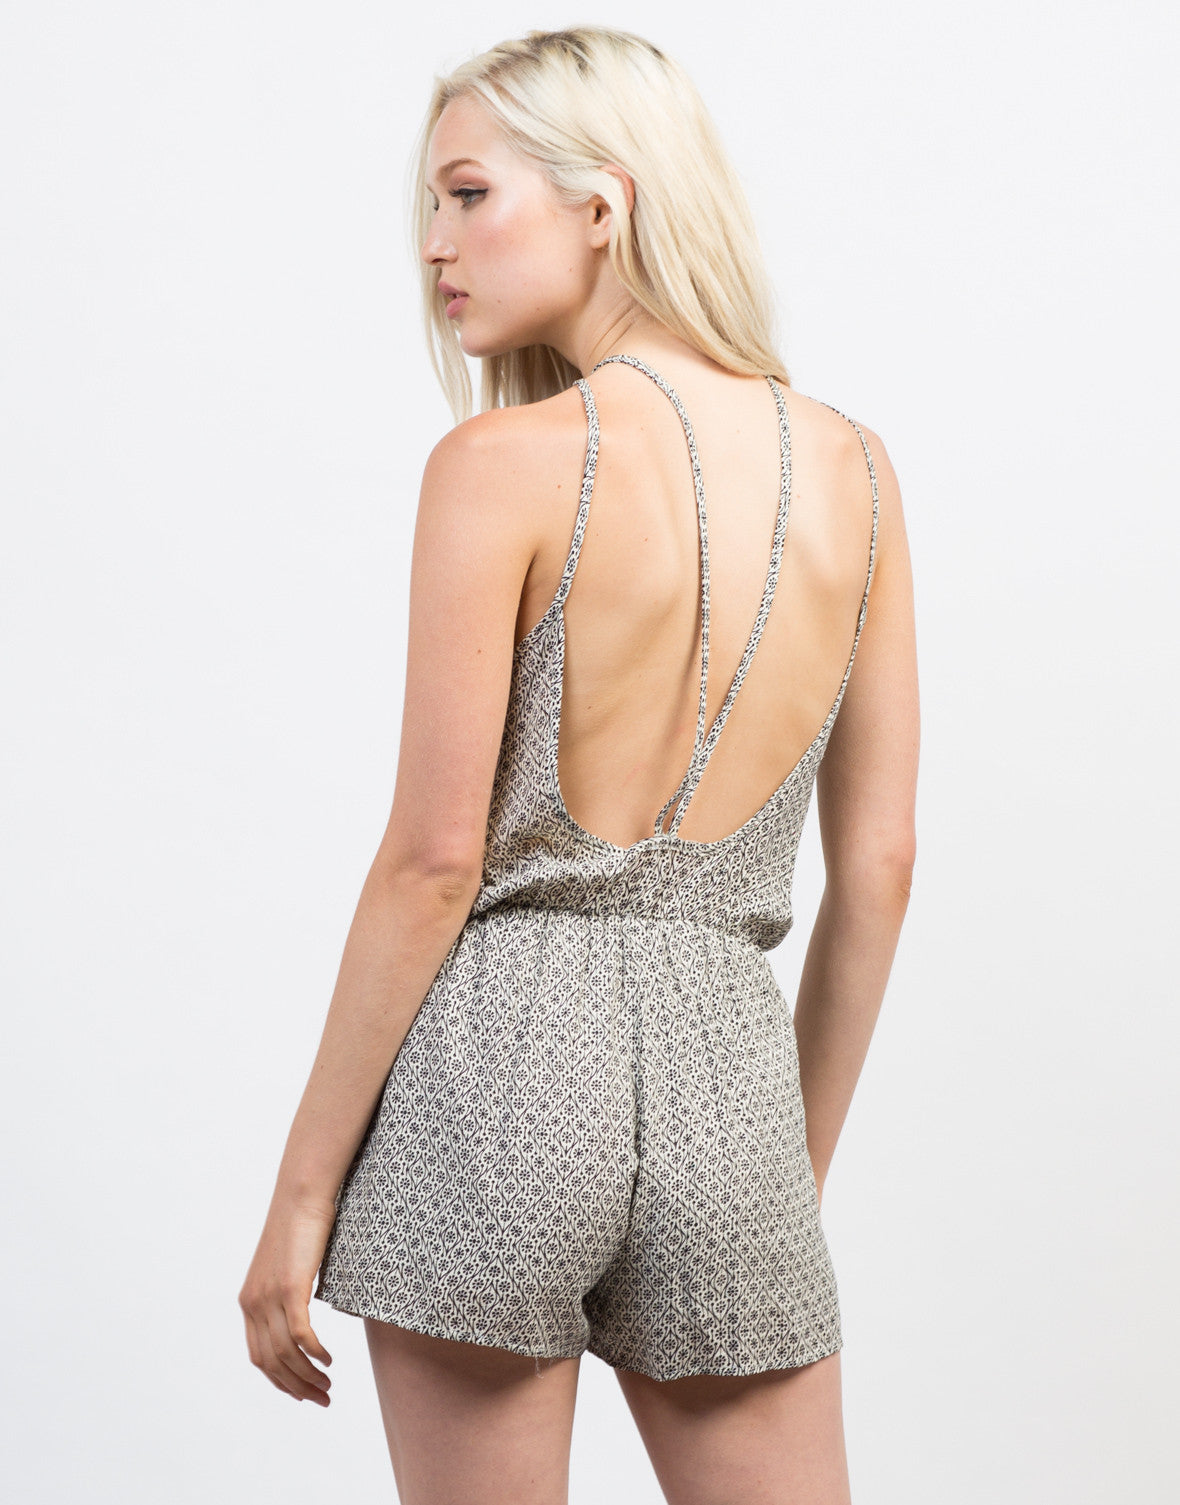 Back View of Light Gauze Printed Romper